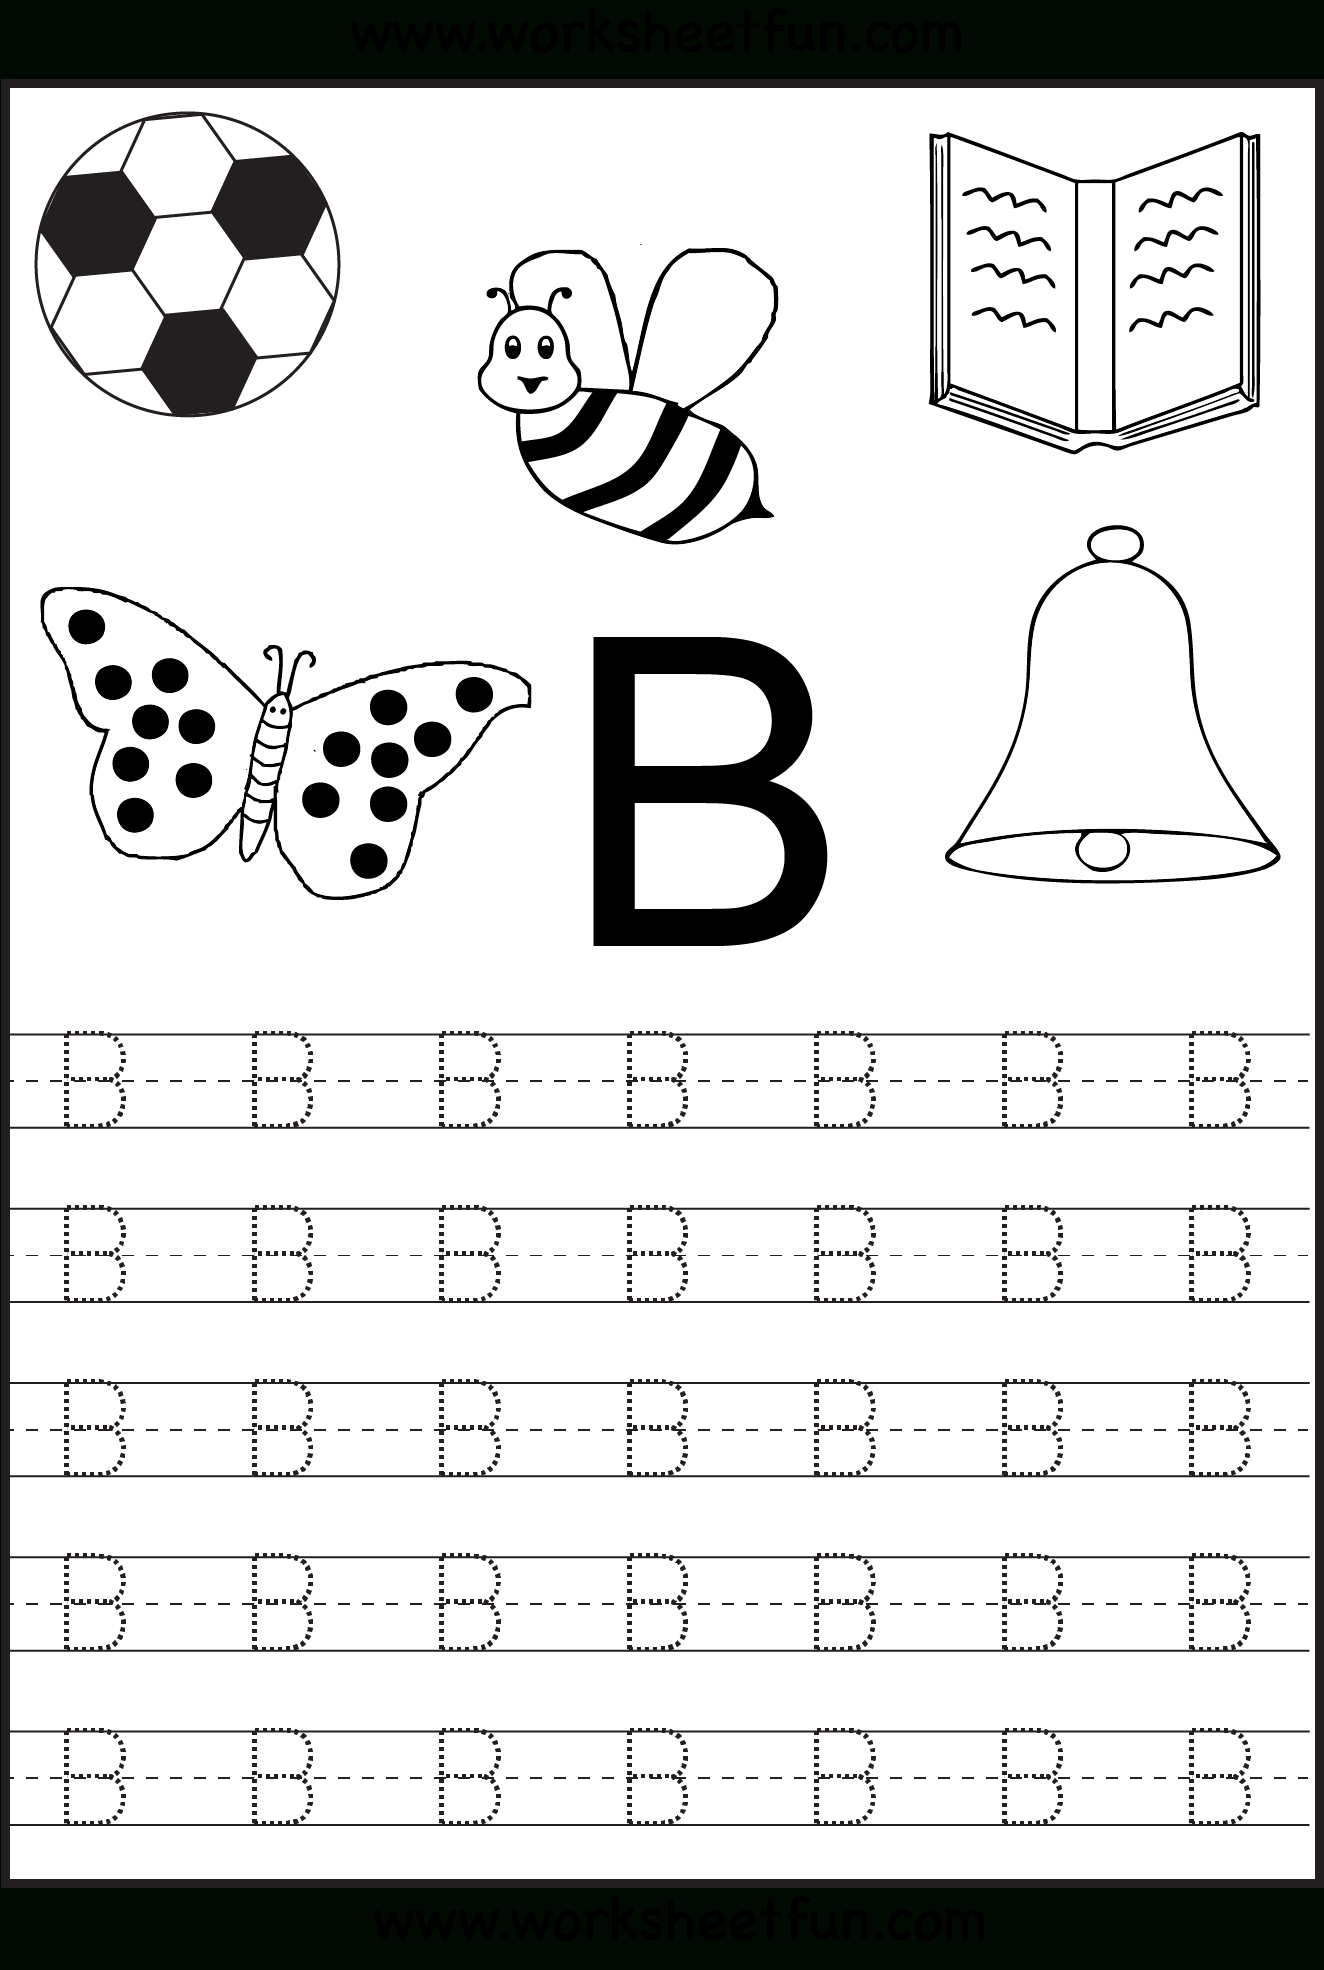 Free Printable Letter Tracing Worksheets For Kindergarten for Trace Letter B Worksheets Preschool